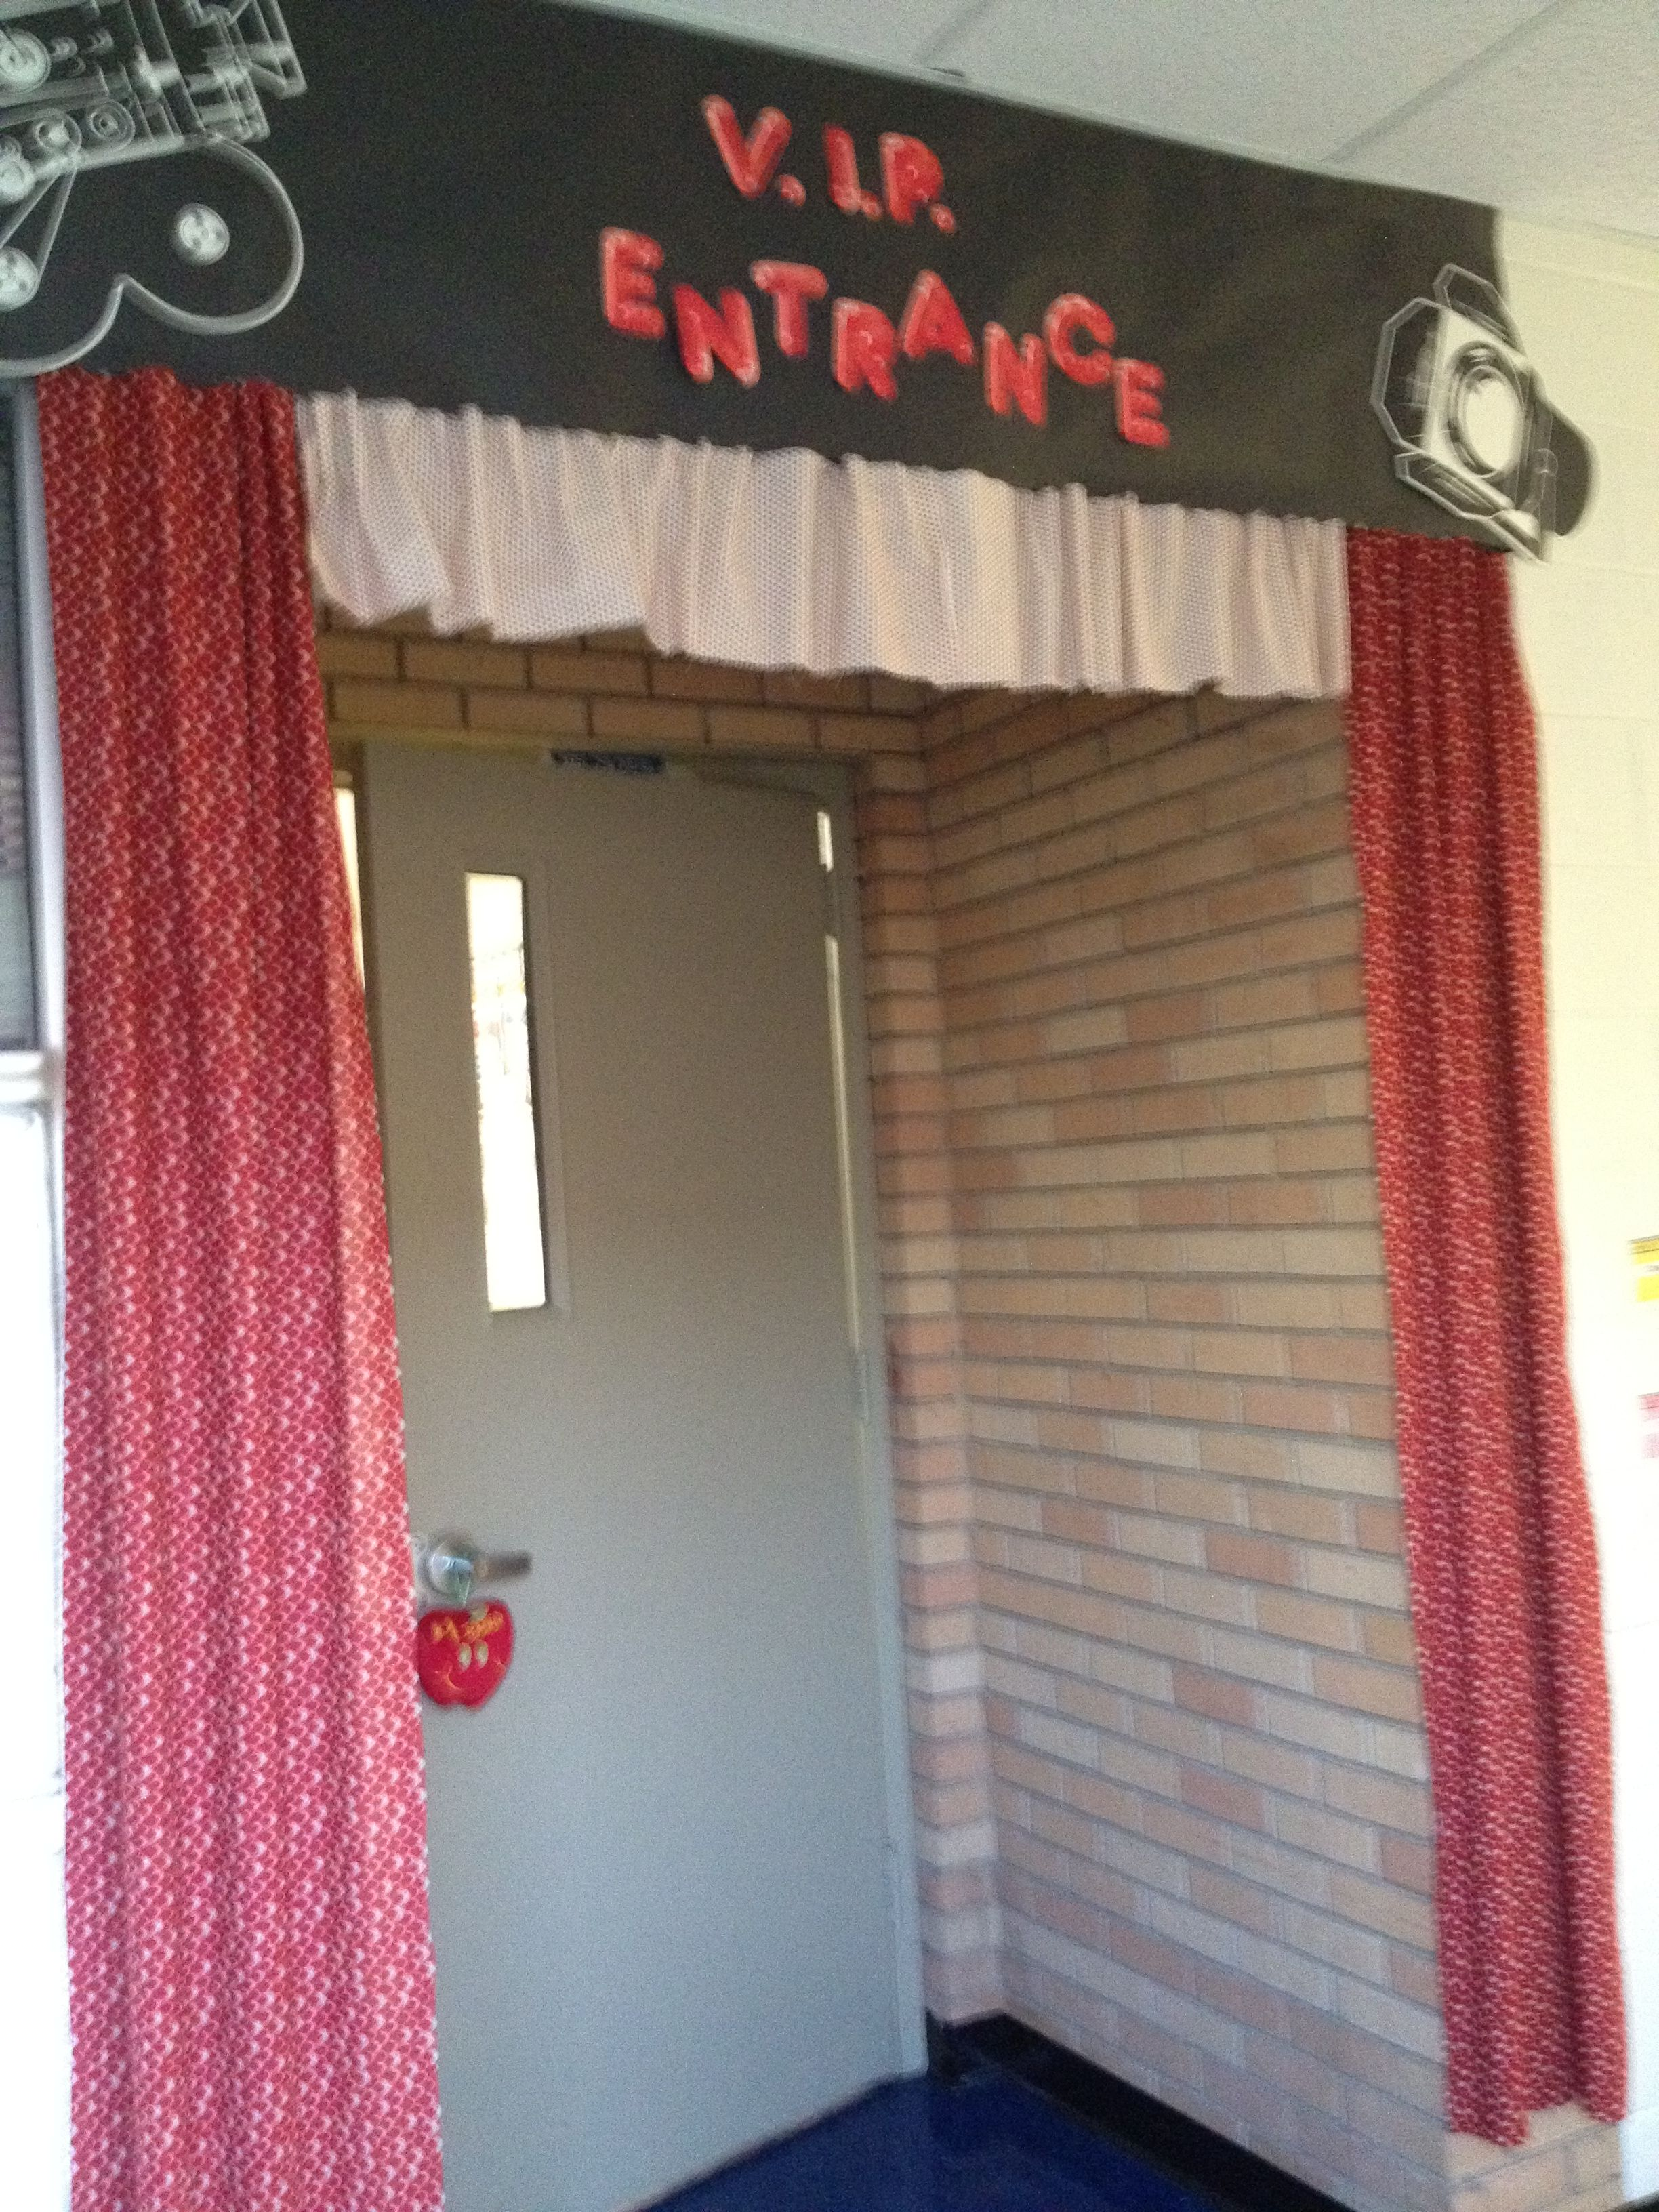 Vip Entrance Curtains And Sign Around The Classroom Entrance Hollywood Theme Classroom Classroom Curtains Hollywood Classroom